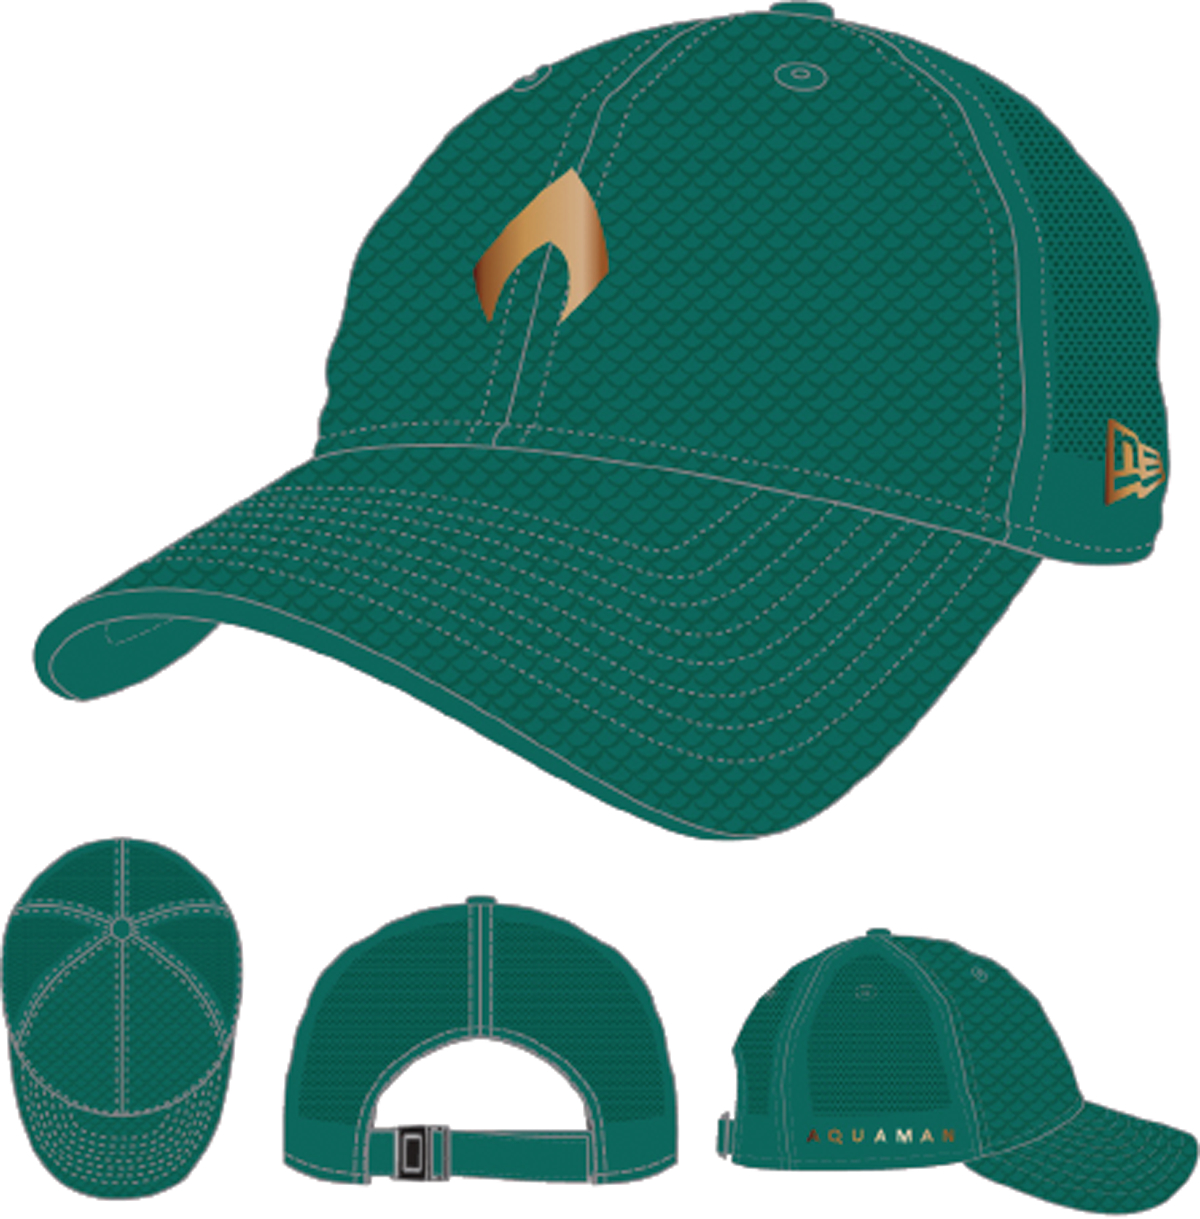 AQUAMAN MOVIE NORTHWEST GREEN 9TWENTY CAP